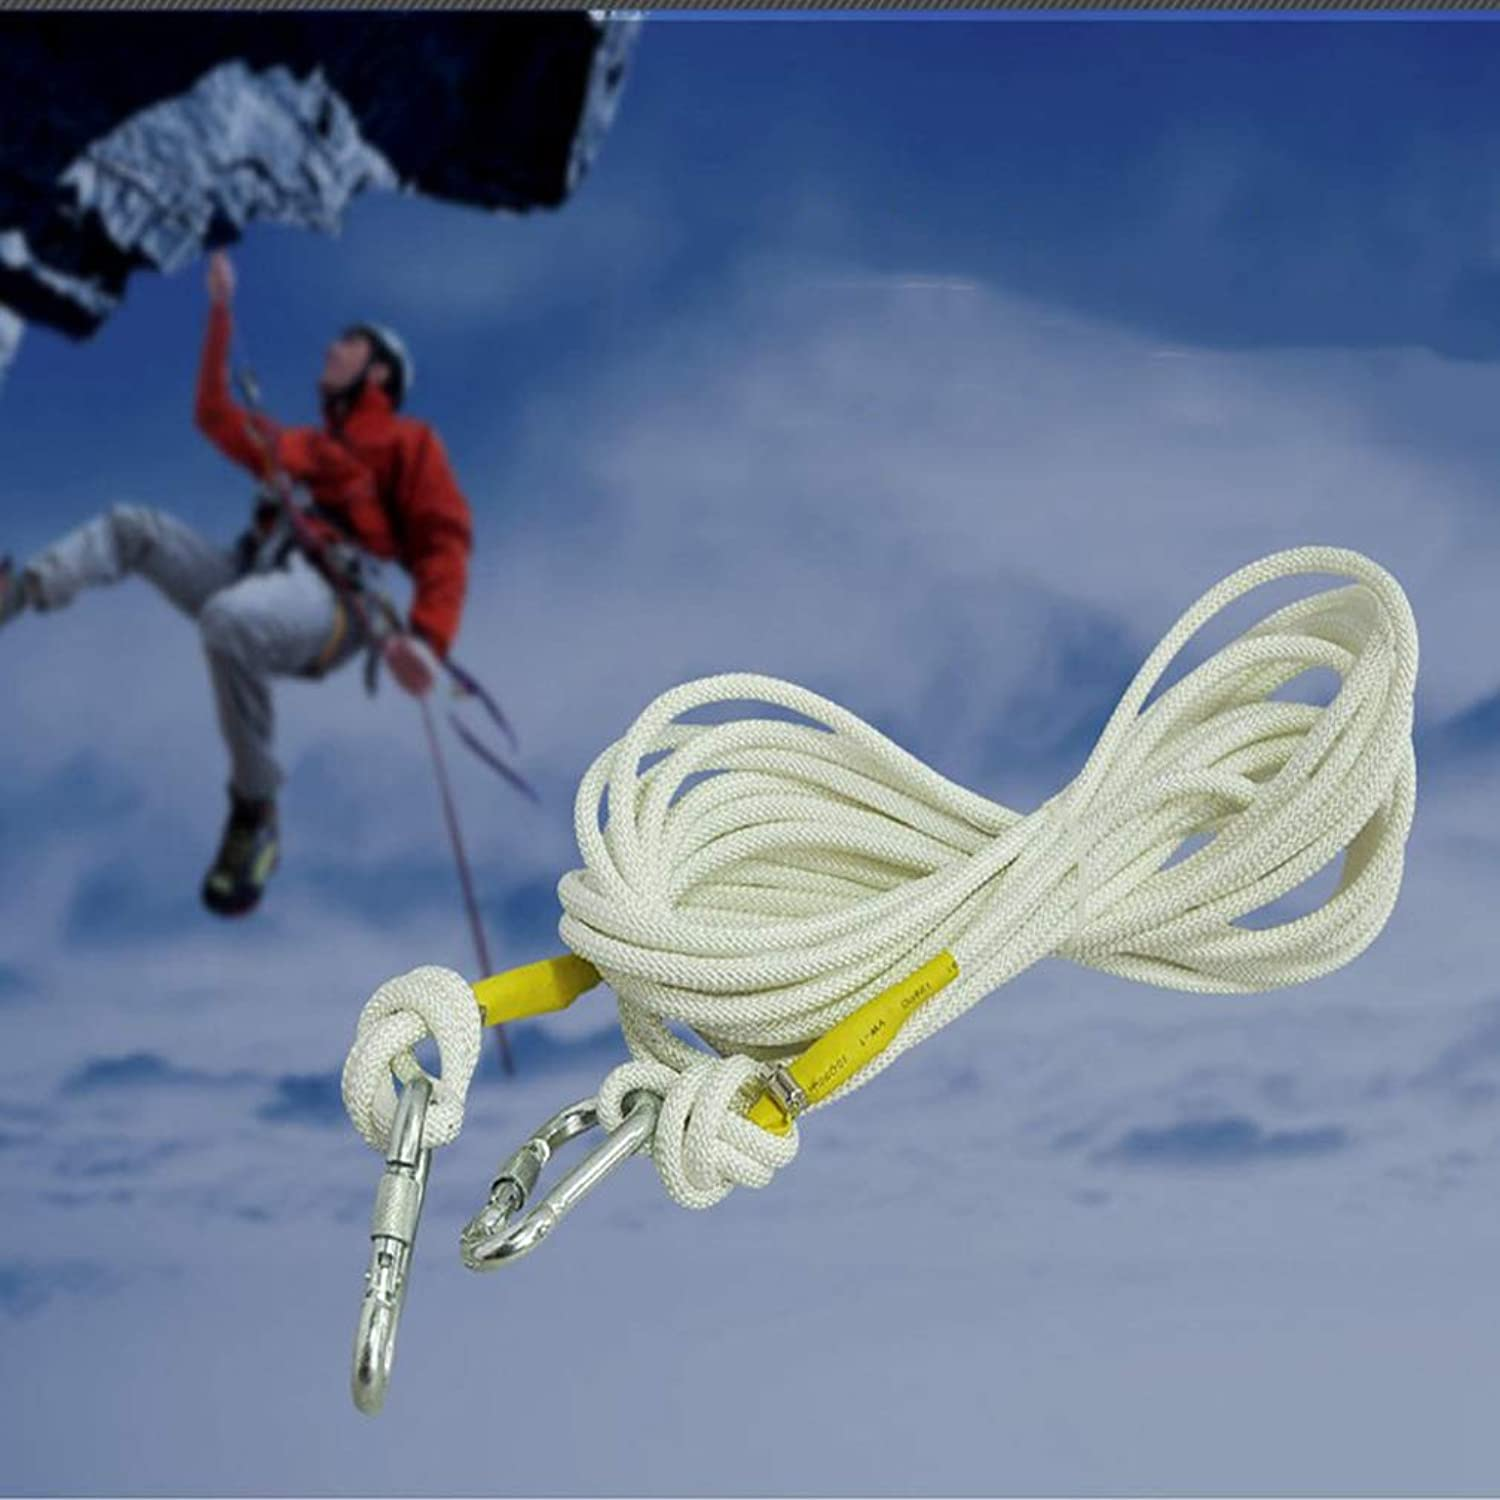 Climbing Rope 10m 15m 20m 30m 50m, Nylon 9mm Steel Wire Rope Mountain Climbing Speed Exploration,30m